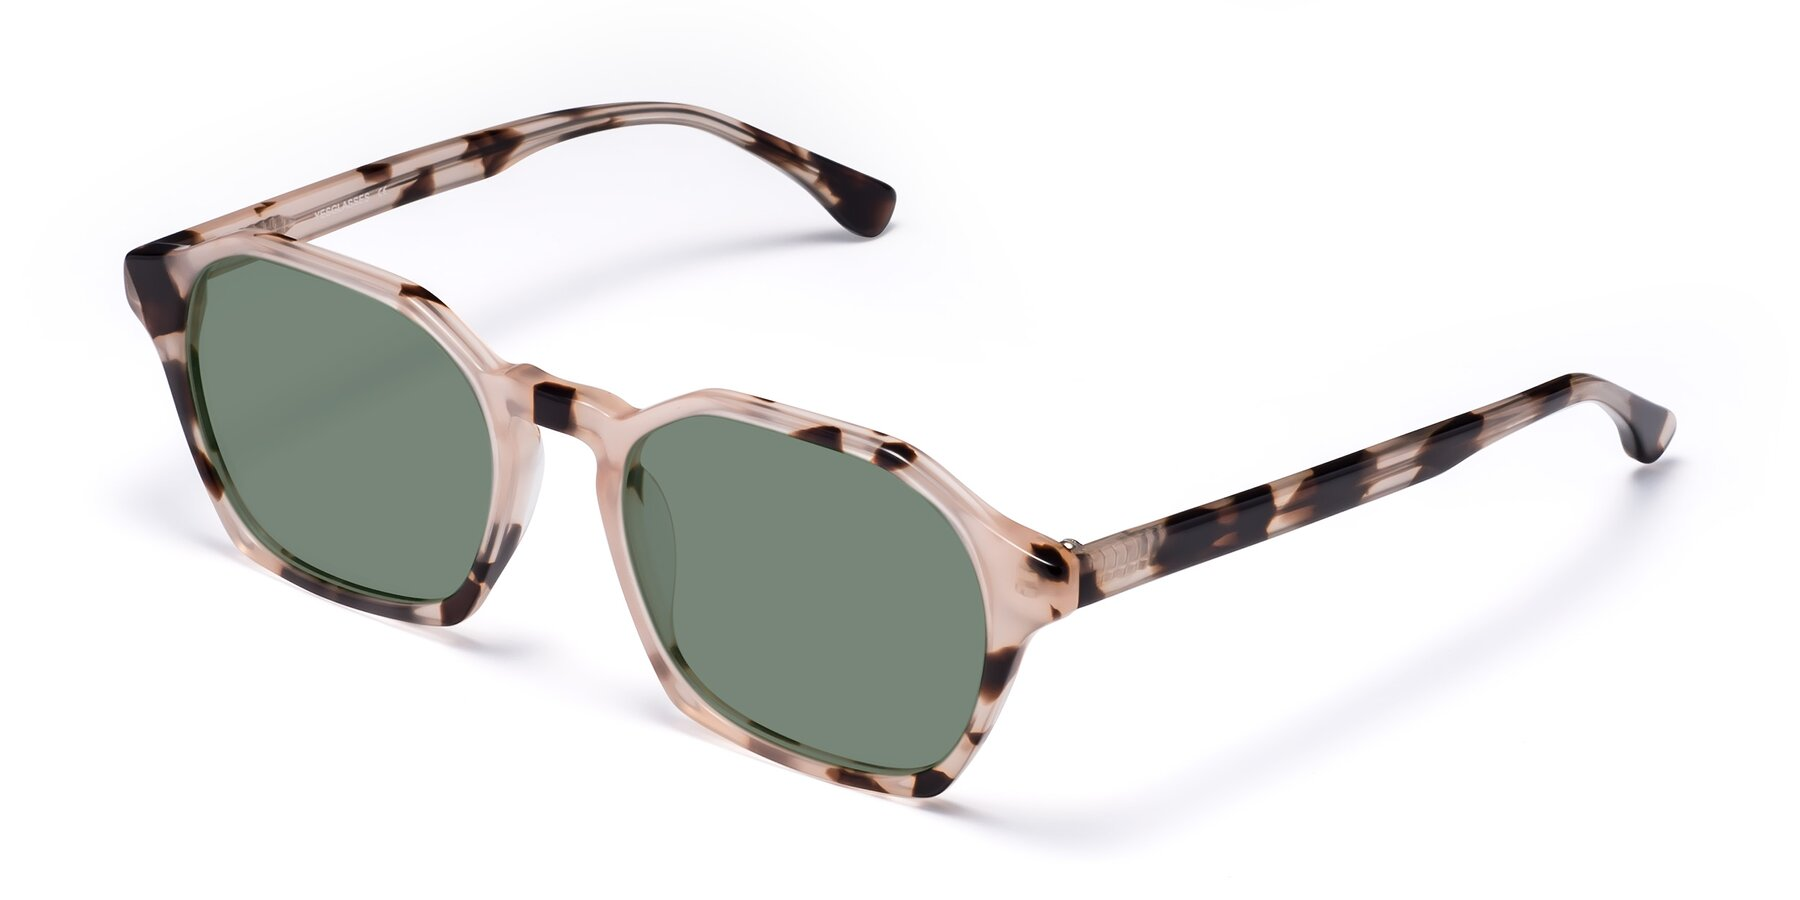 Angle of Stoltz in Leopard with Medium Green Tinted Lenses